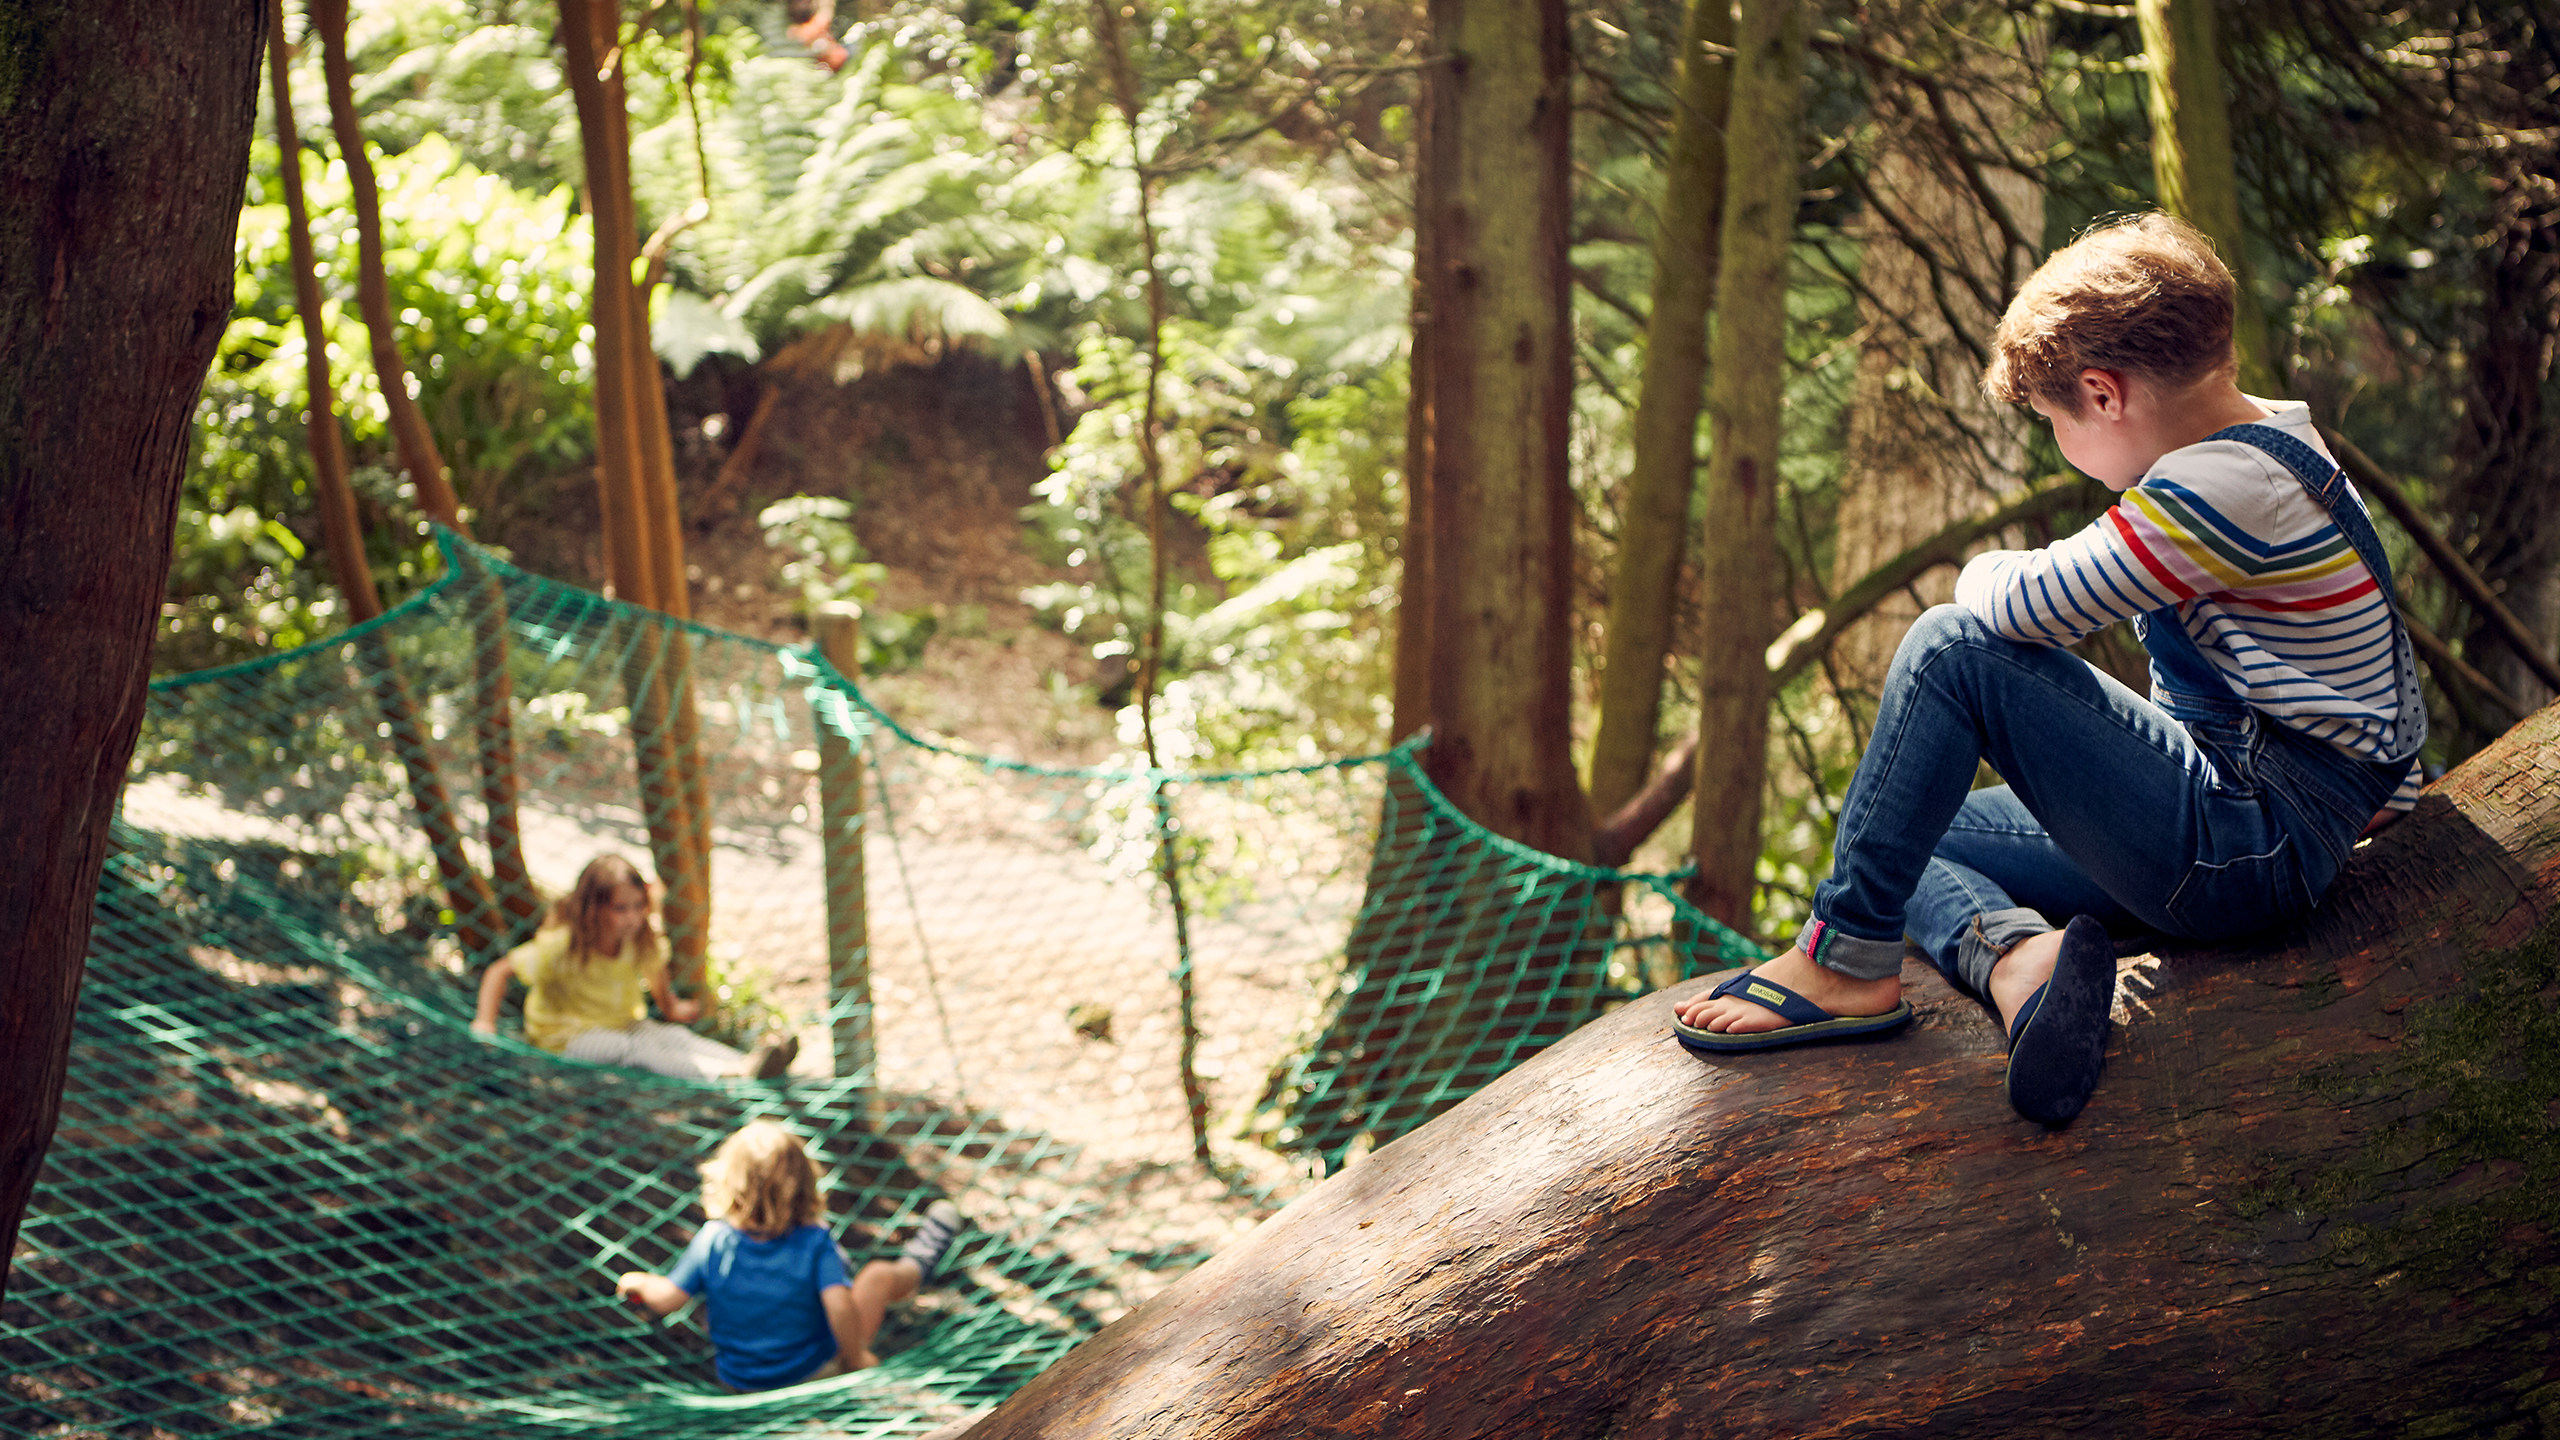 Children playing at the play area at Trebah Garden Cornwall